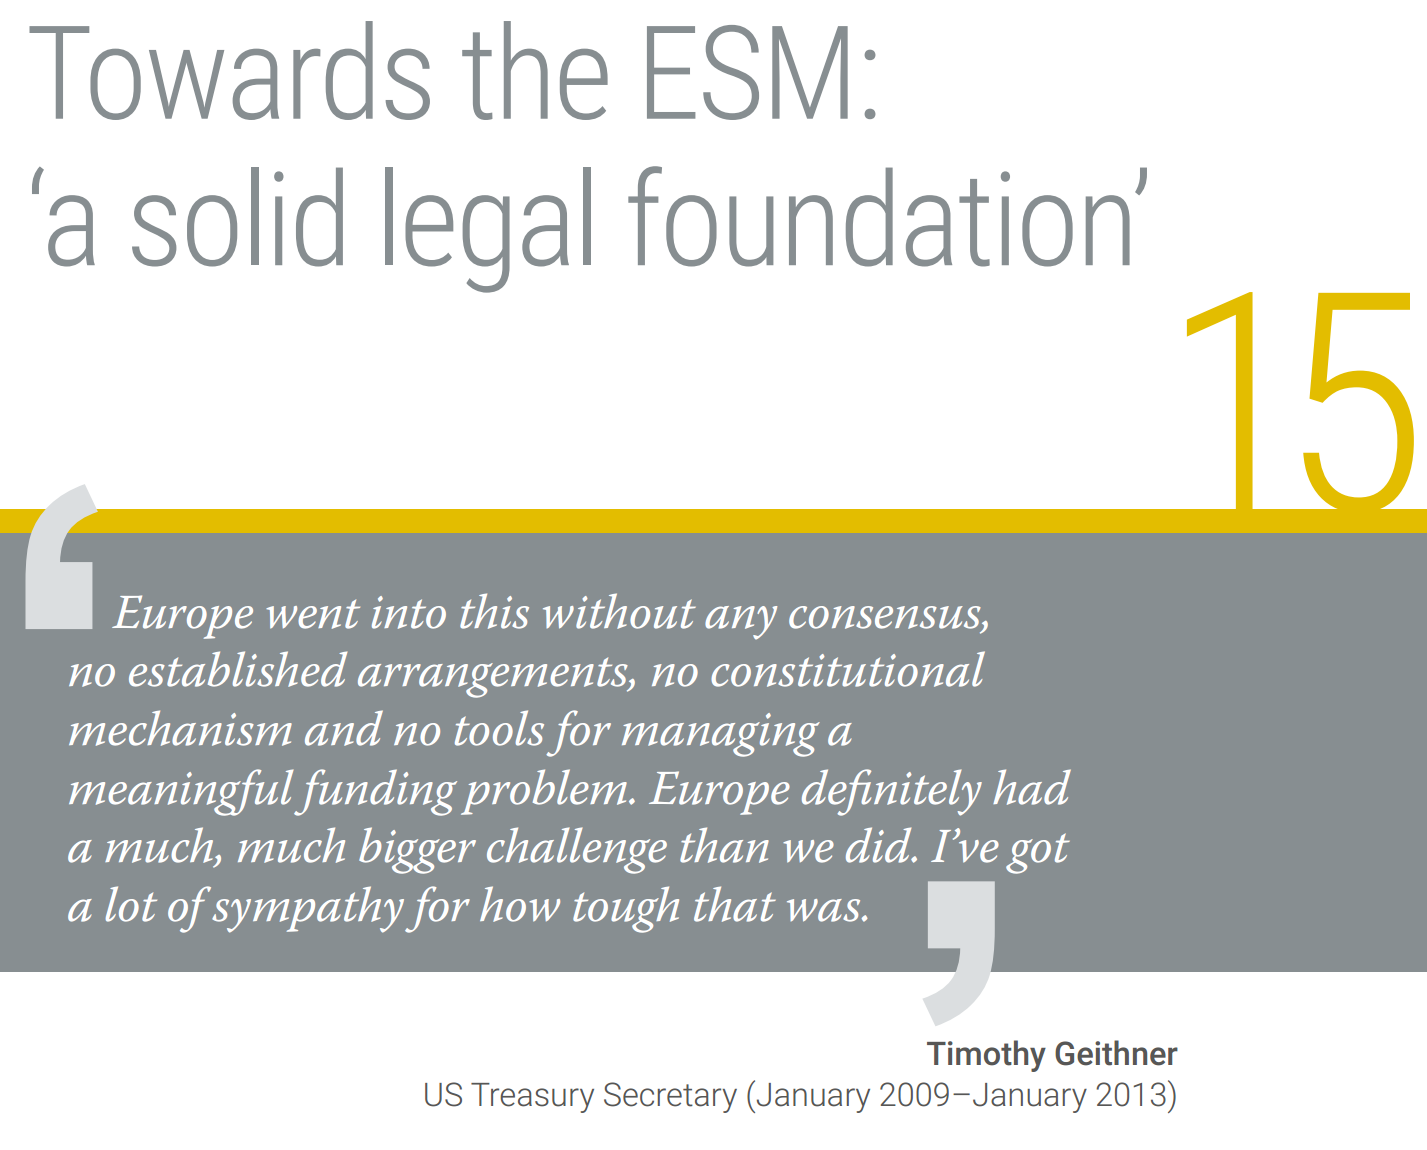 Efforts Underway To Fully Fund Idea >> 15 Towards The Esm A Solid Legal Foundation European Stability